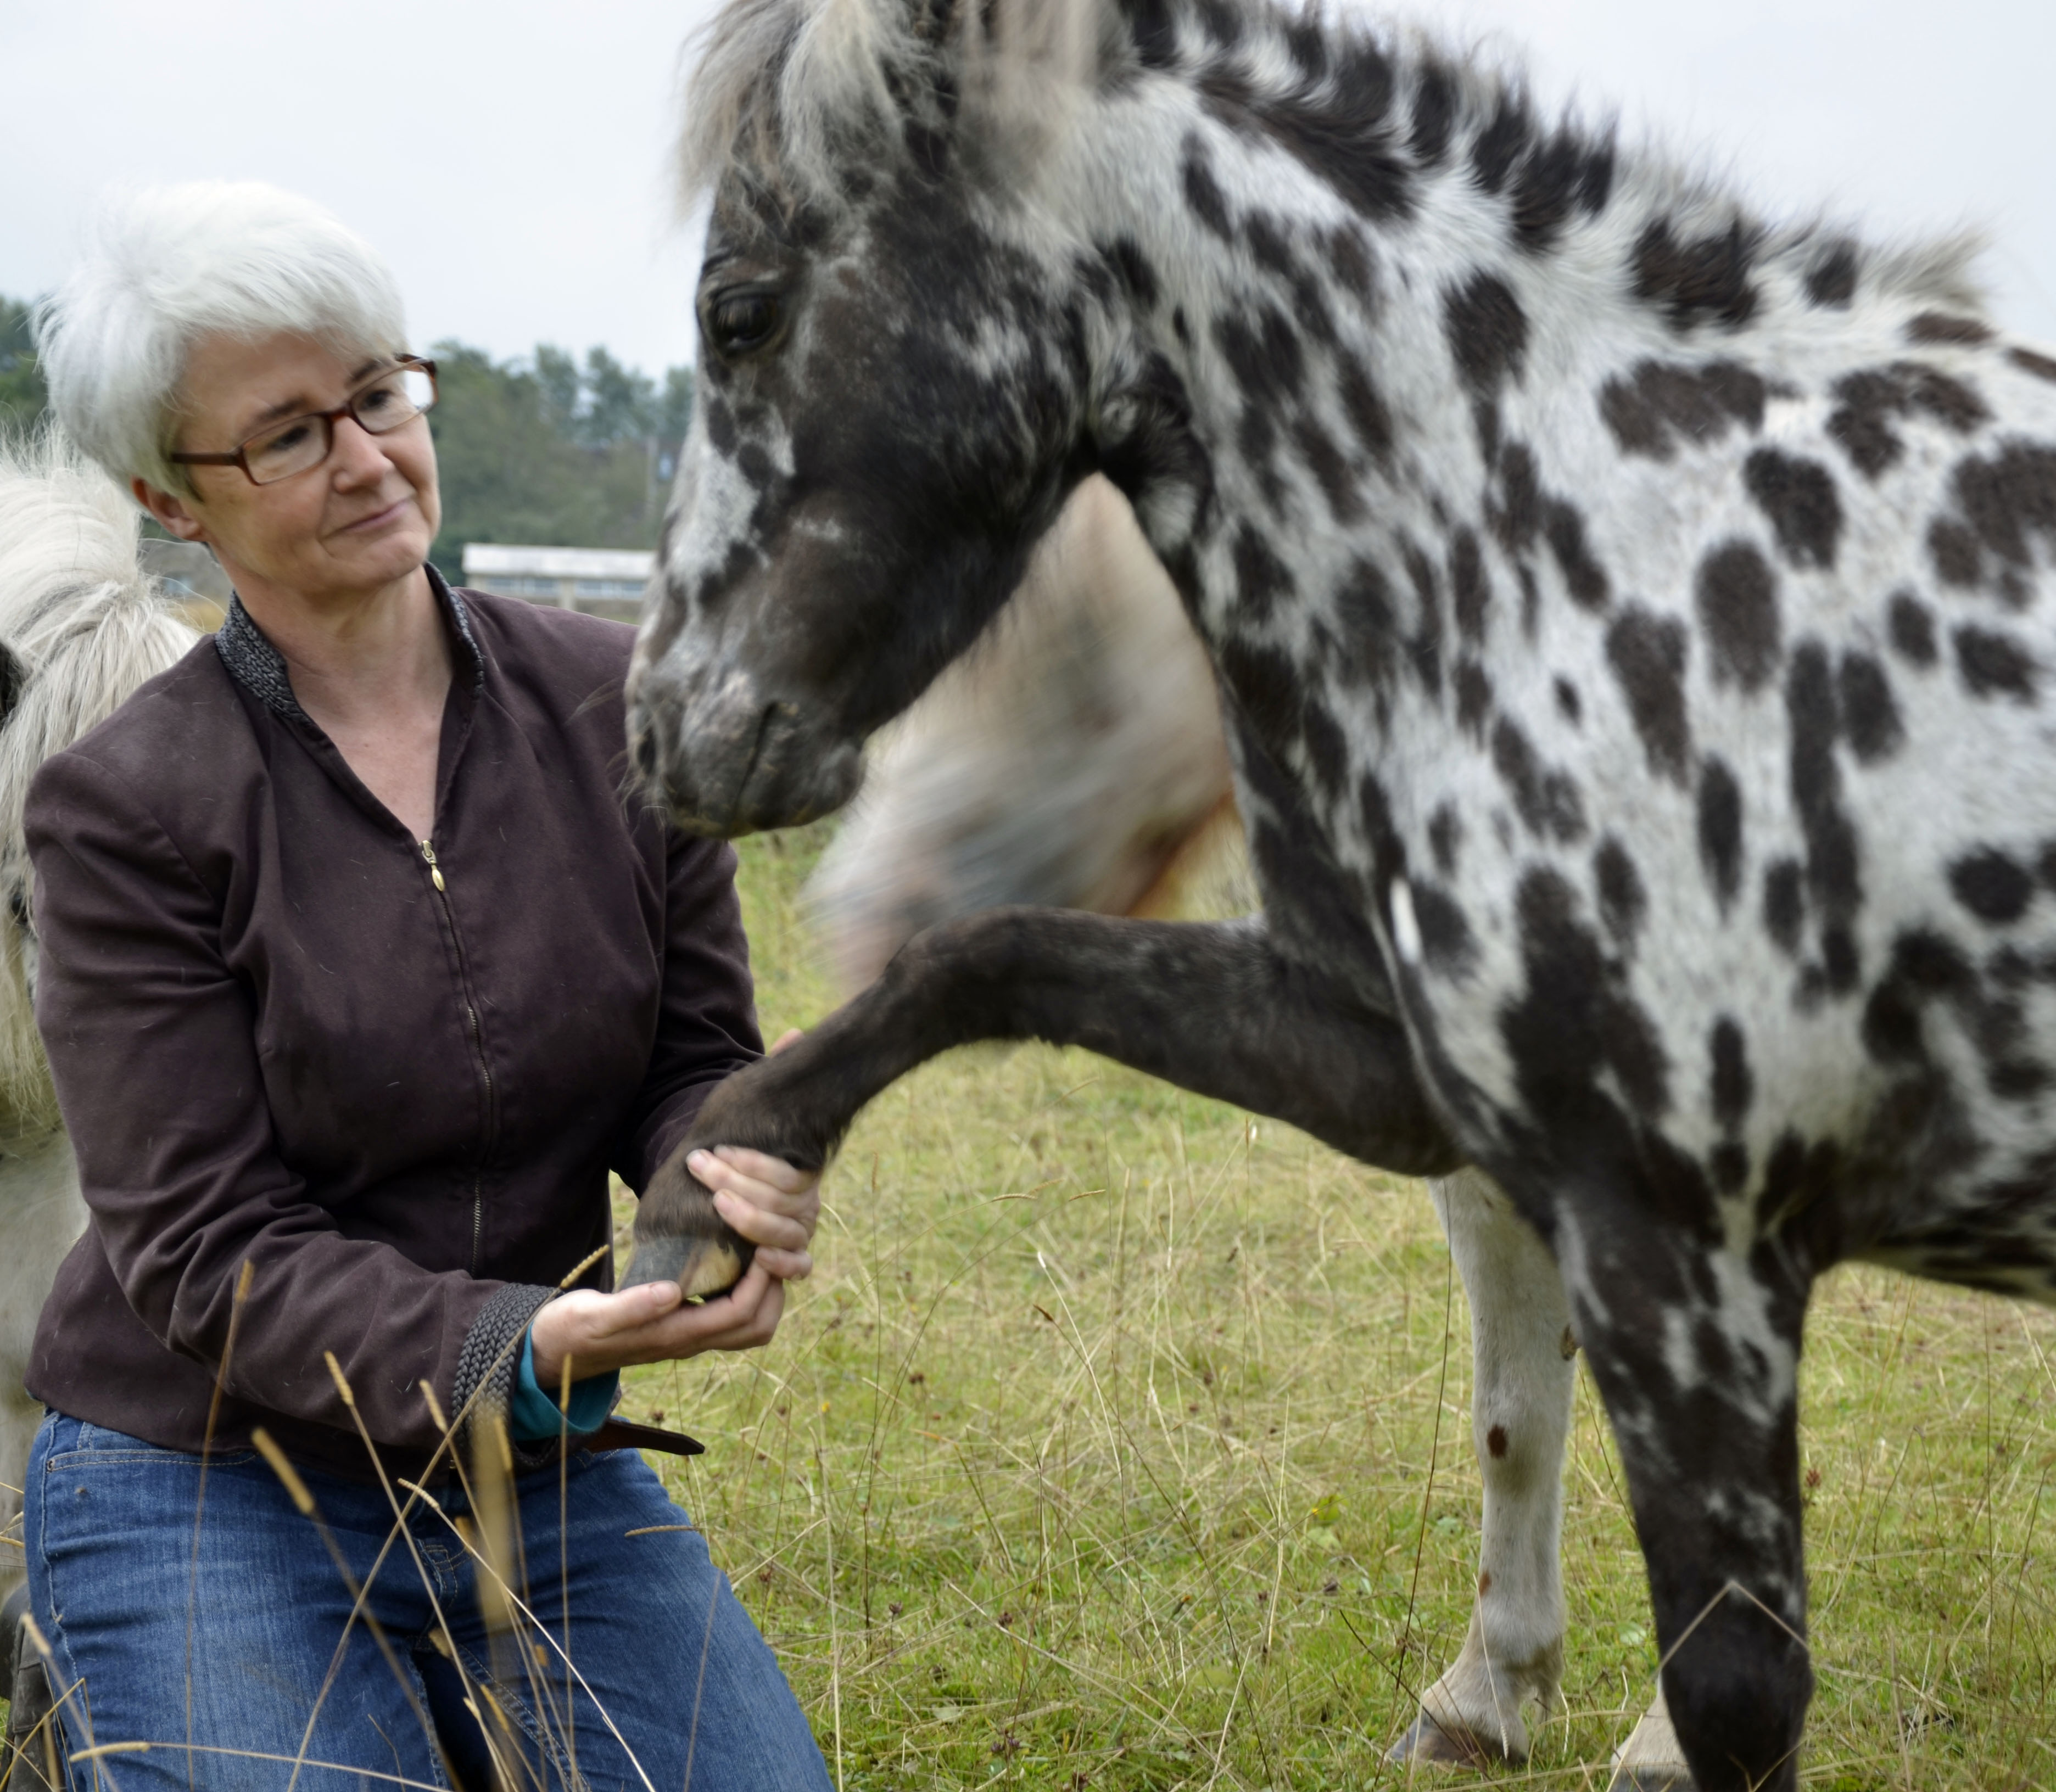 Horses helping with Autism